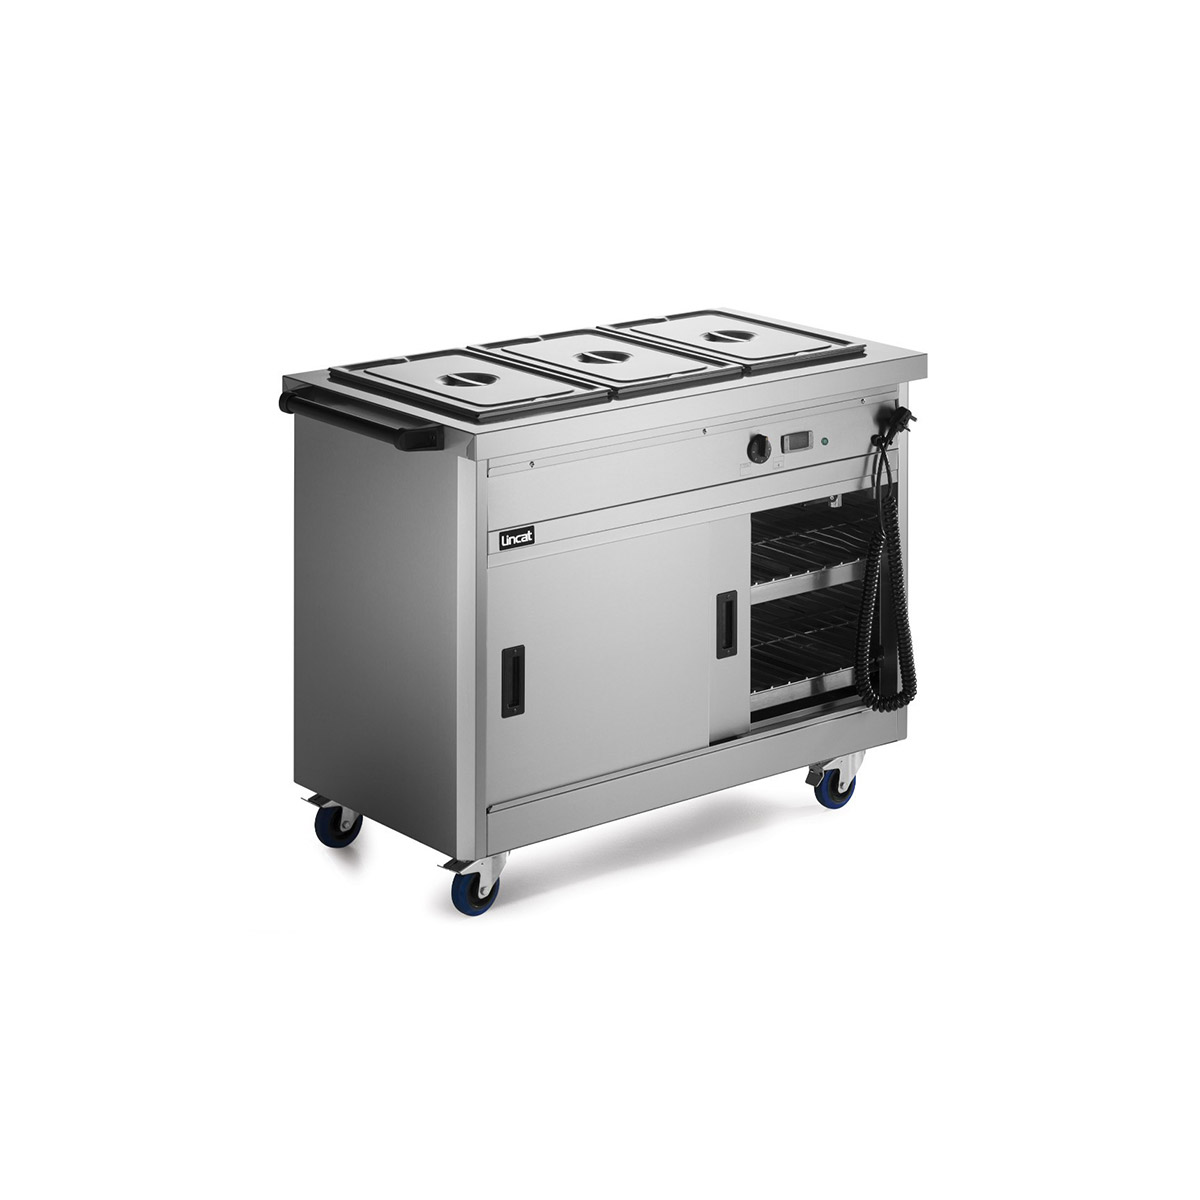 P6B3 - Lincat Panther 670 Series Free-standing Hot Cupboard - Bain Marie Top - 3GN - W 1205 mm - 2.8 kW